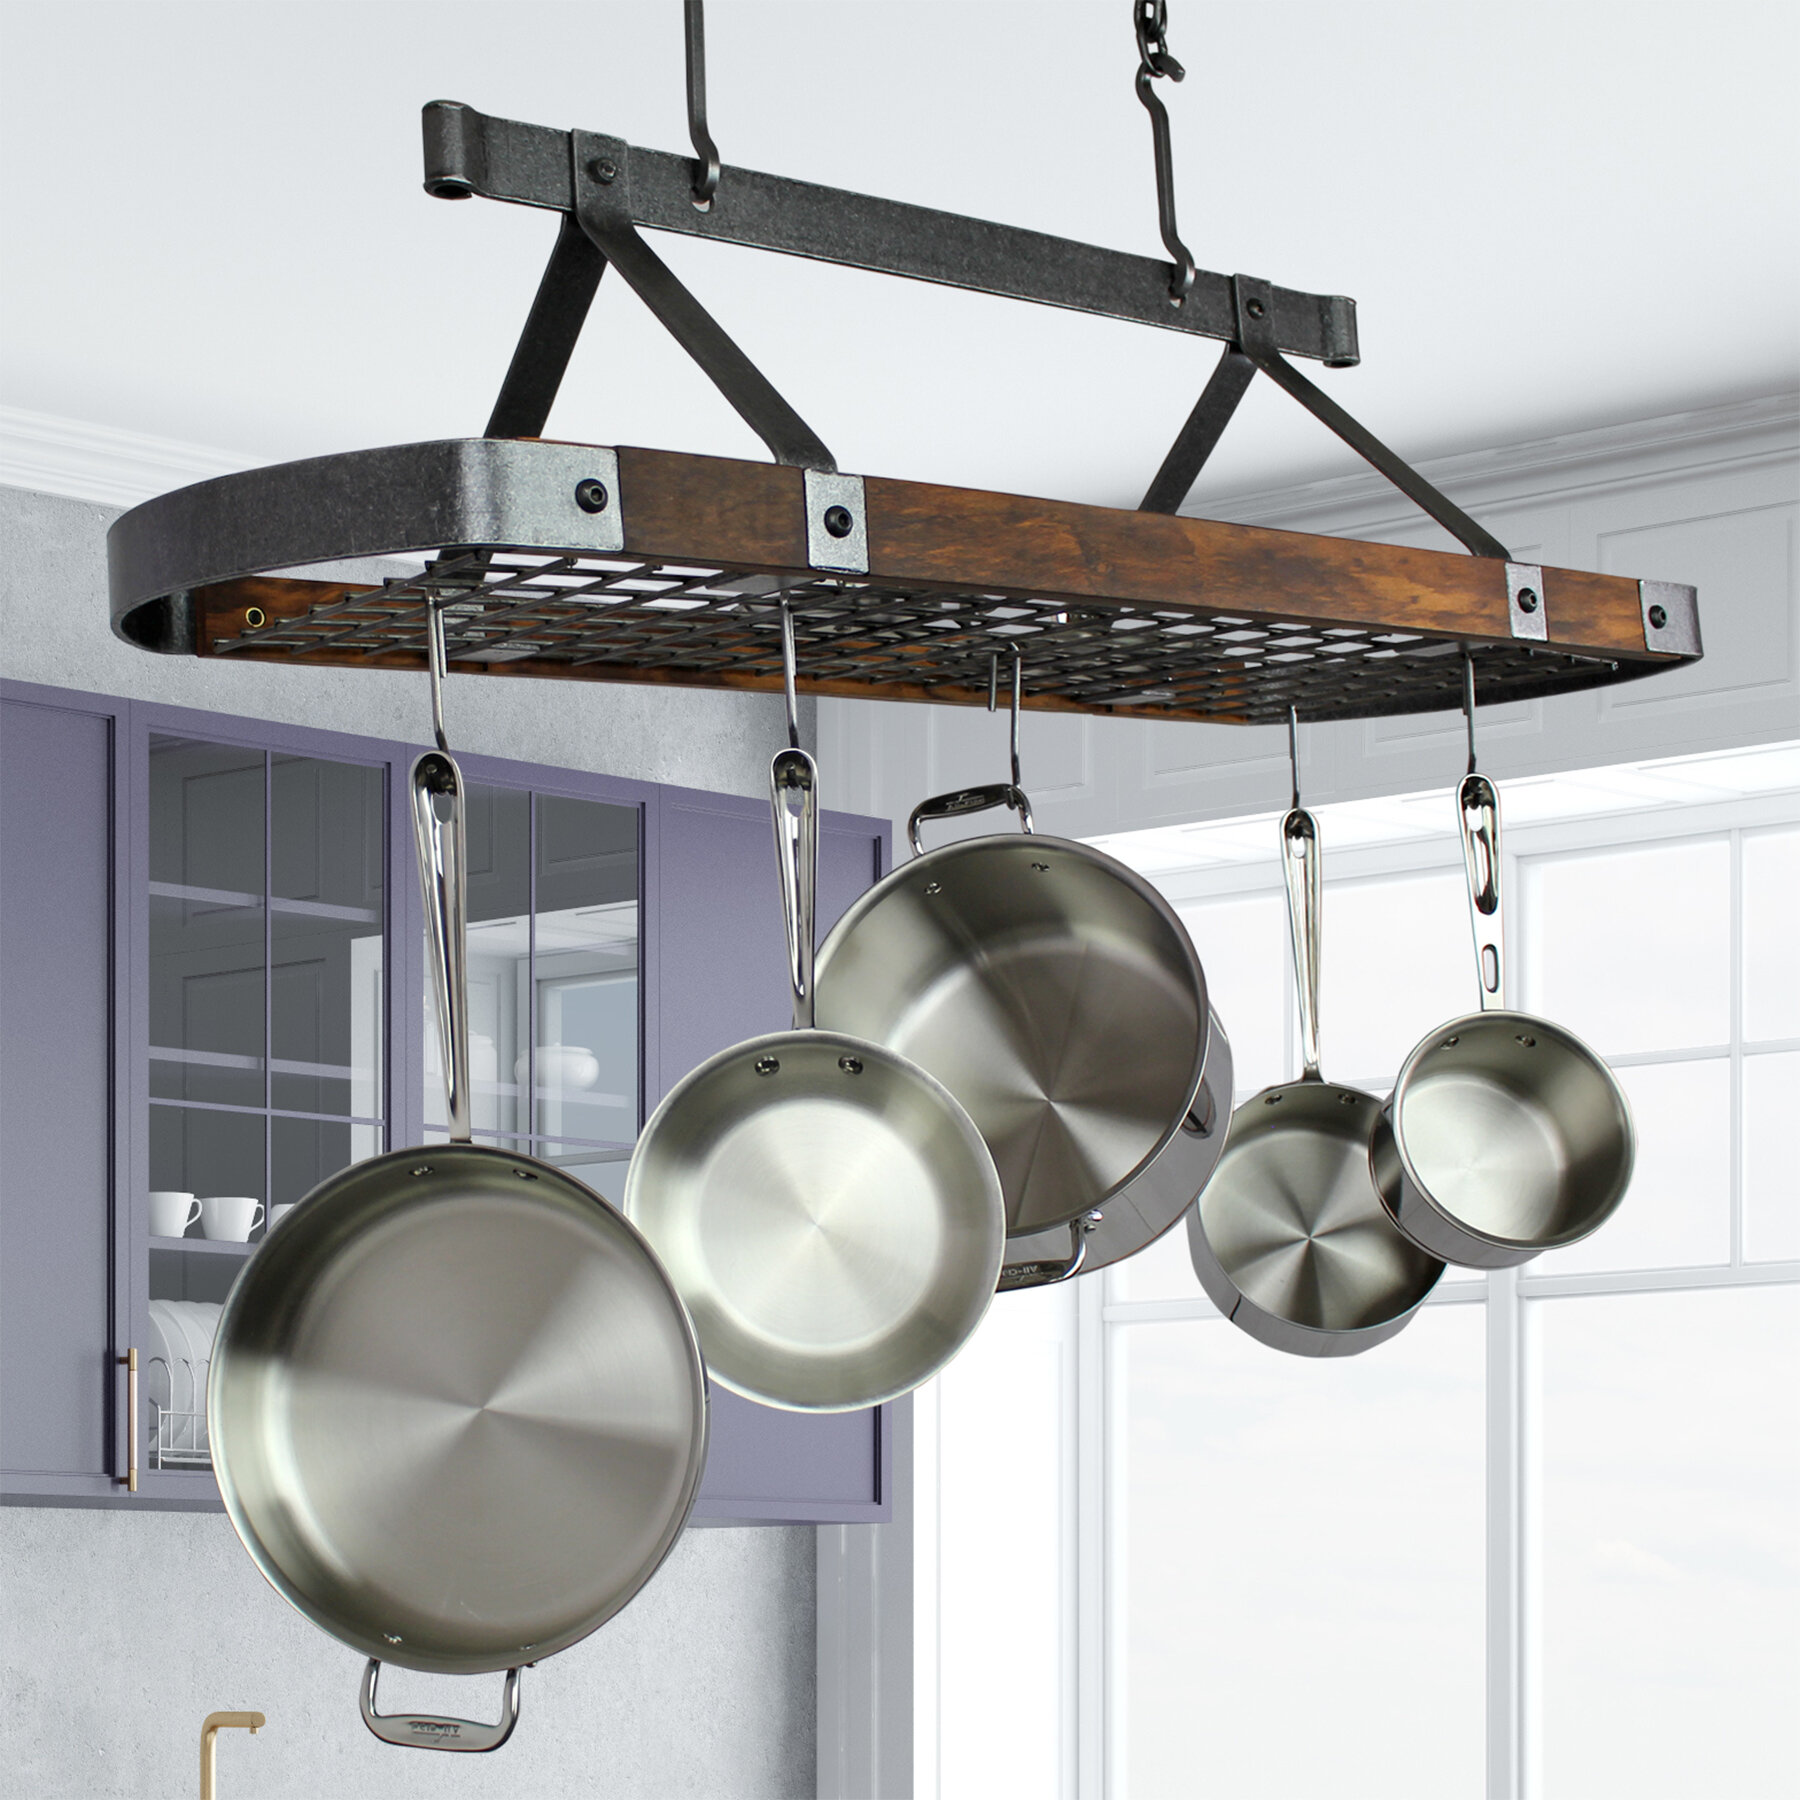 Enclume Usa Handcrafted Signature Oval Hanging Ceiling Pot Rack Reviews Wayfair